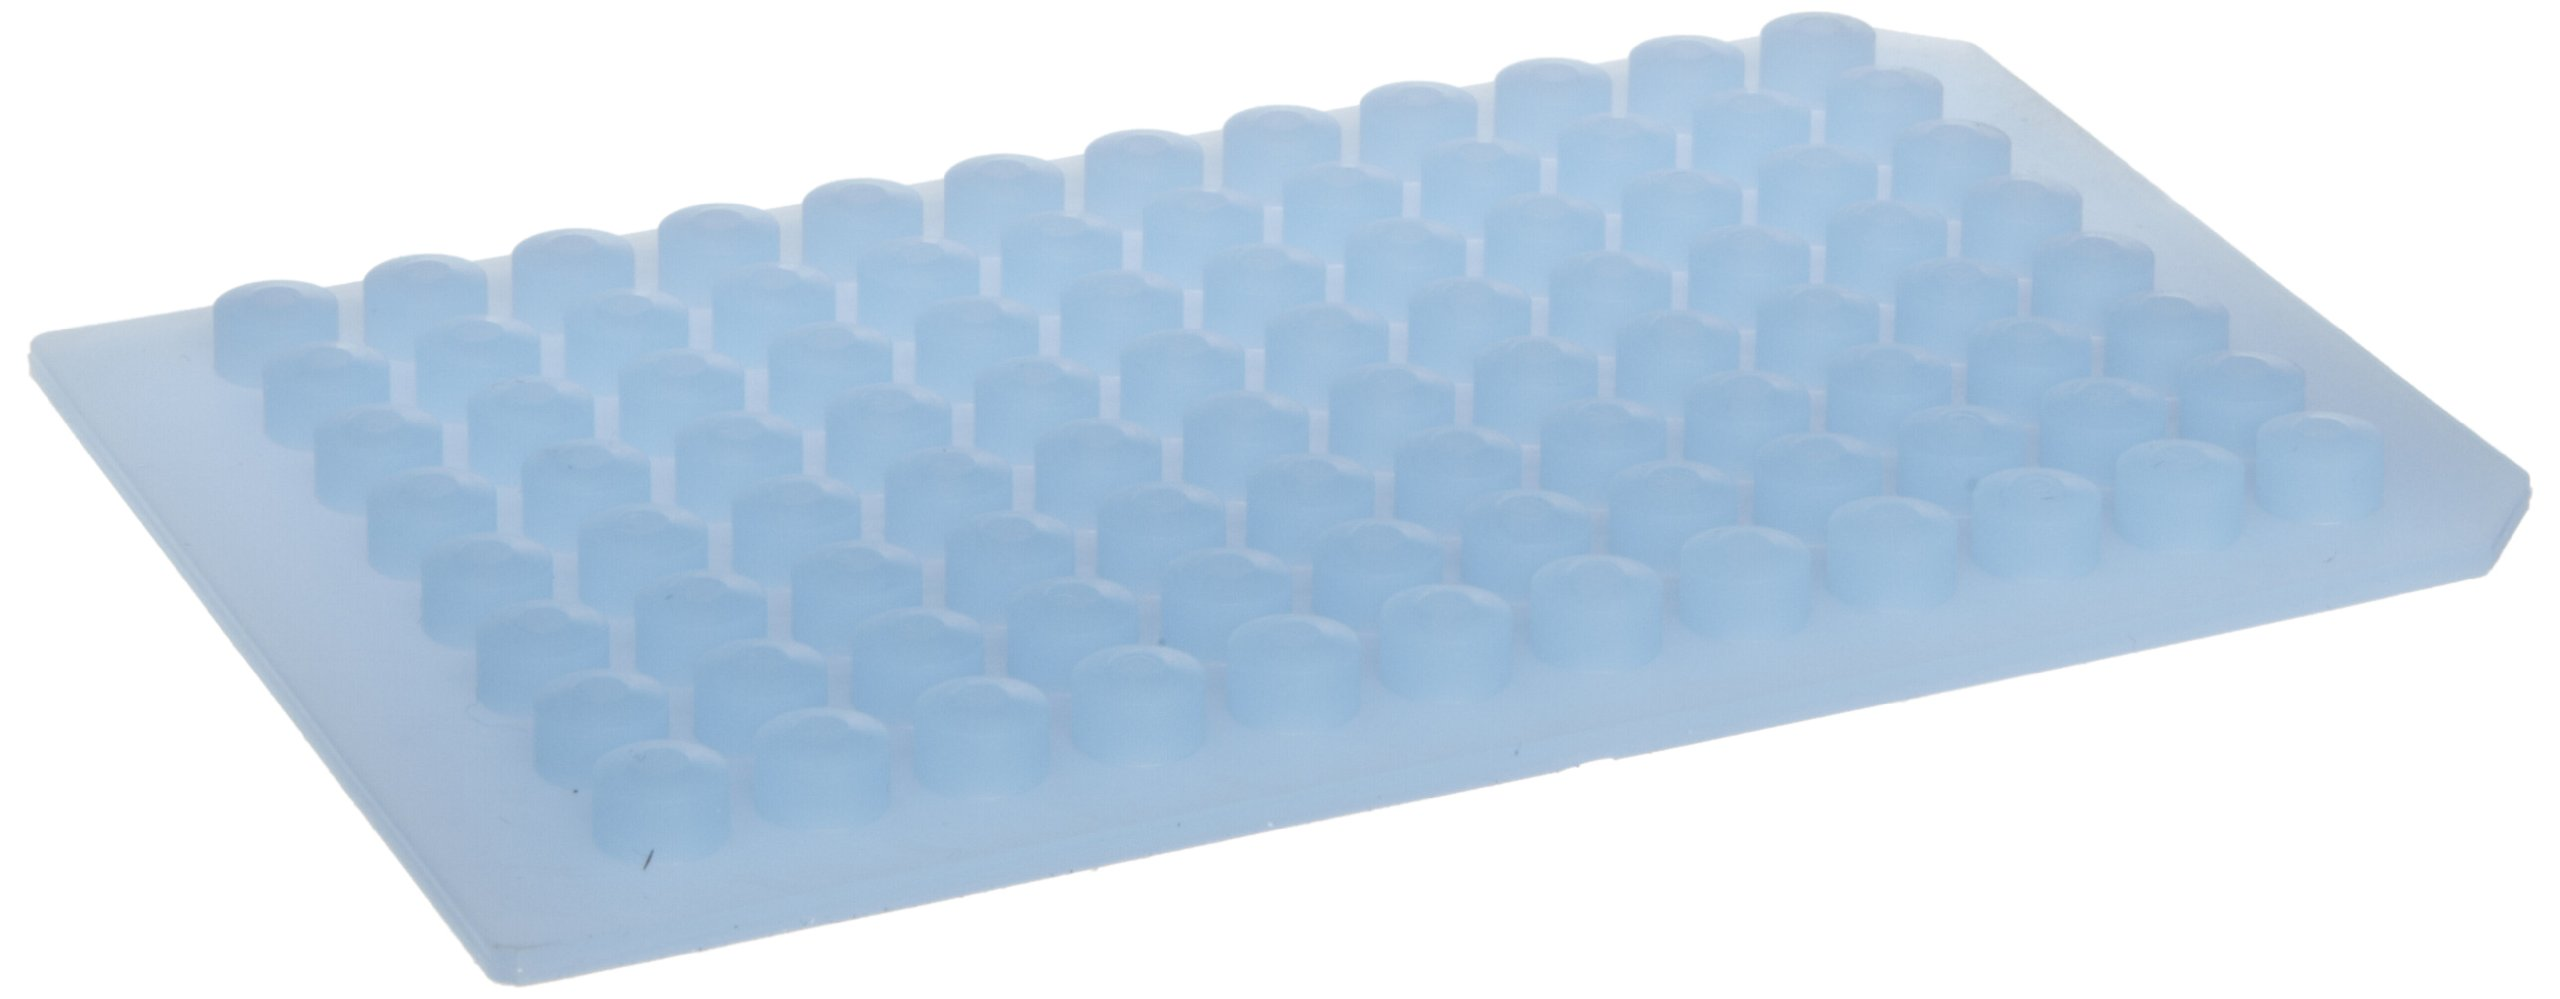 MicroMat Flat 96 Well Square PTFE Coated Silicone Microplate Sealing System, Blue (Case of 10)